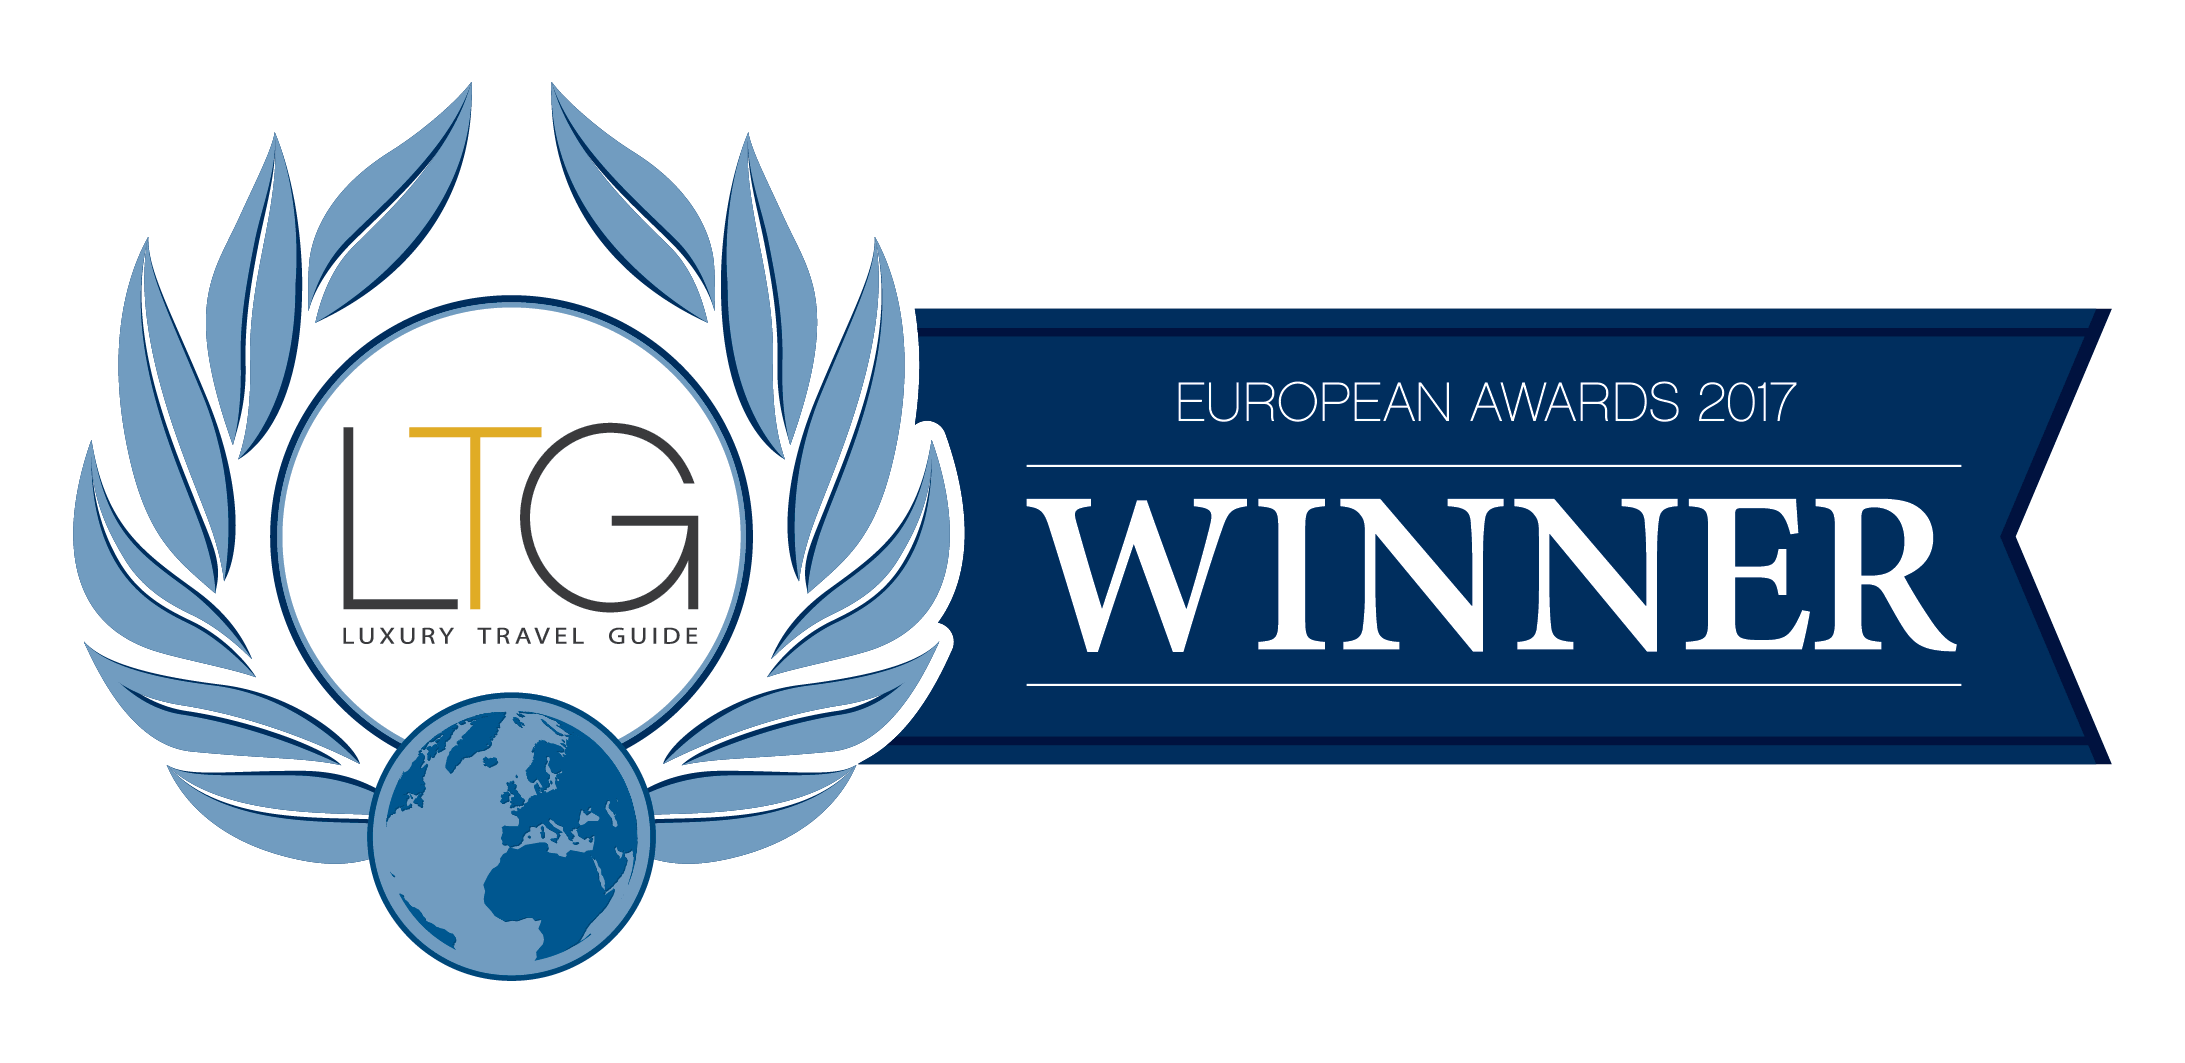 trigiro_LuxuryTravelGuide_Europe-2017_Winner_Service-Excellence-Award